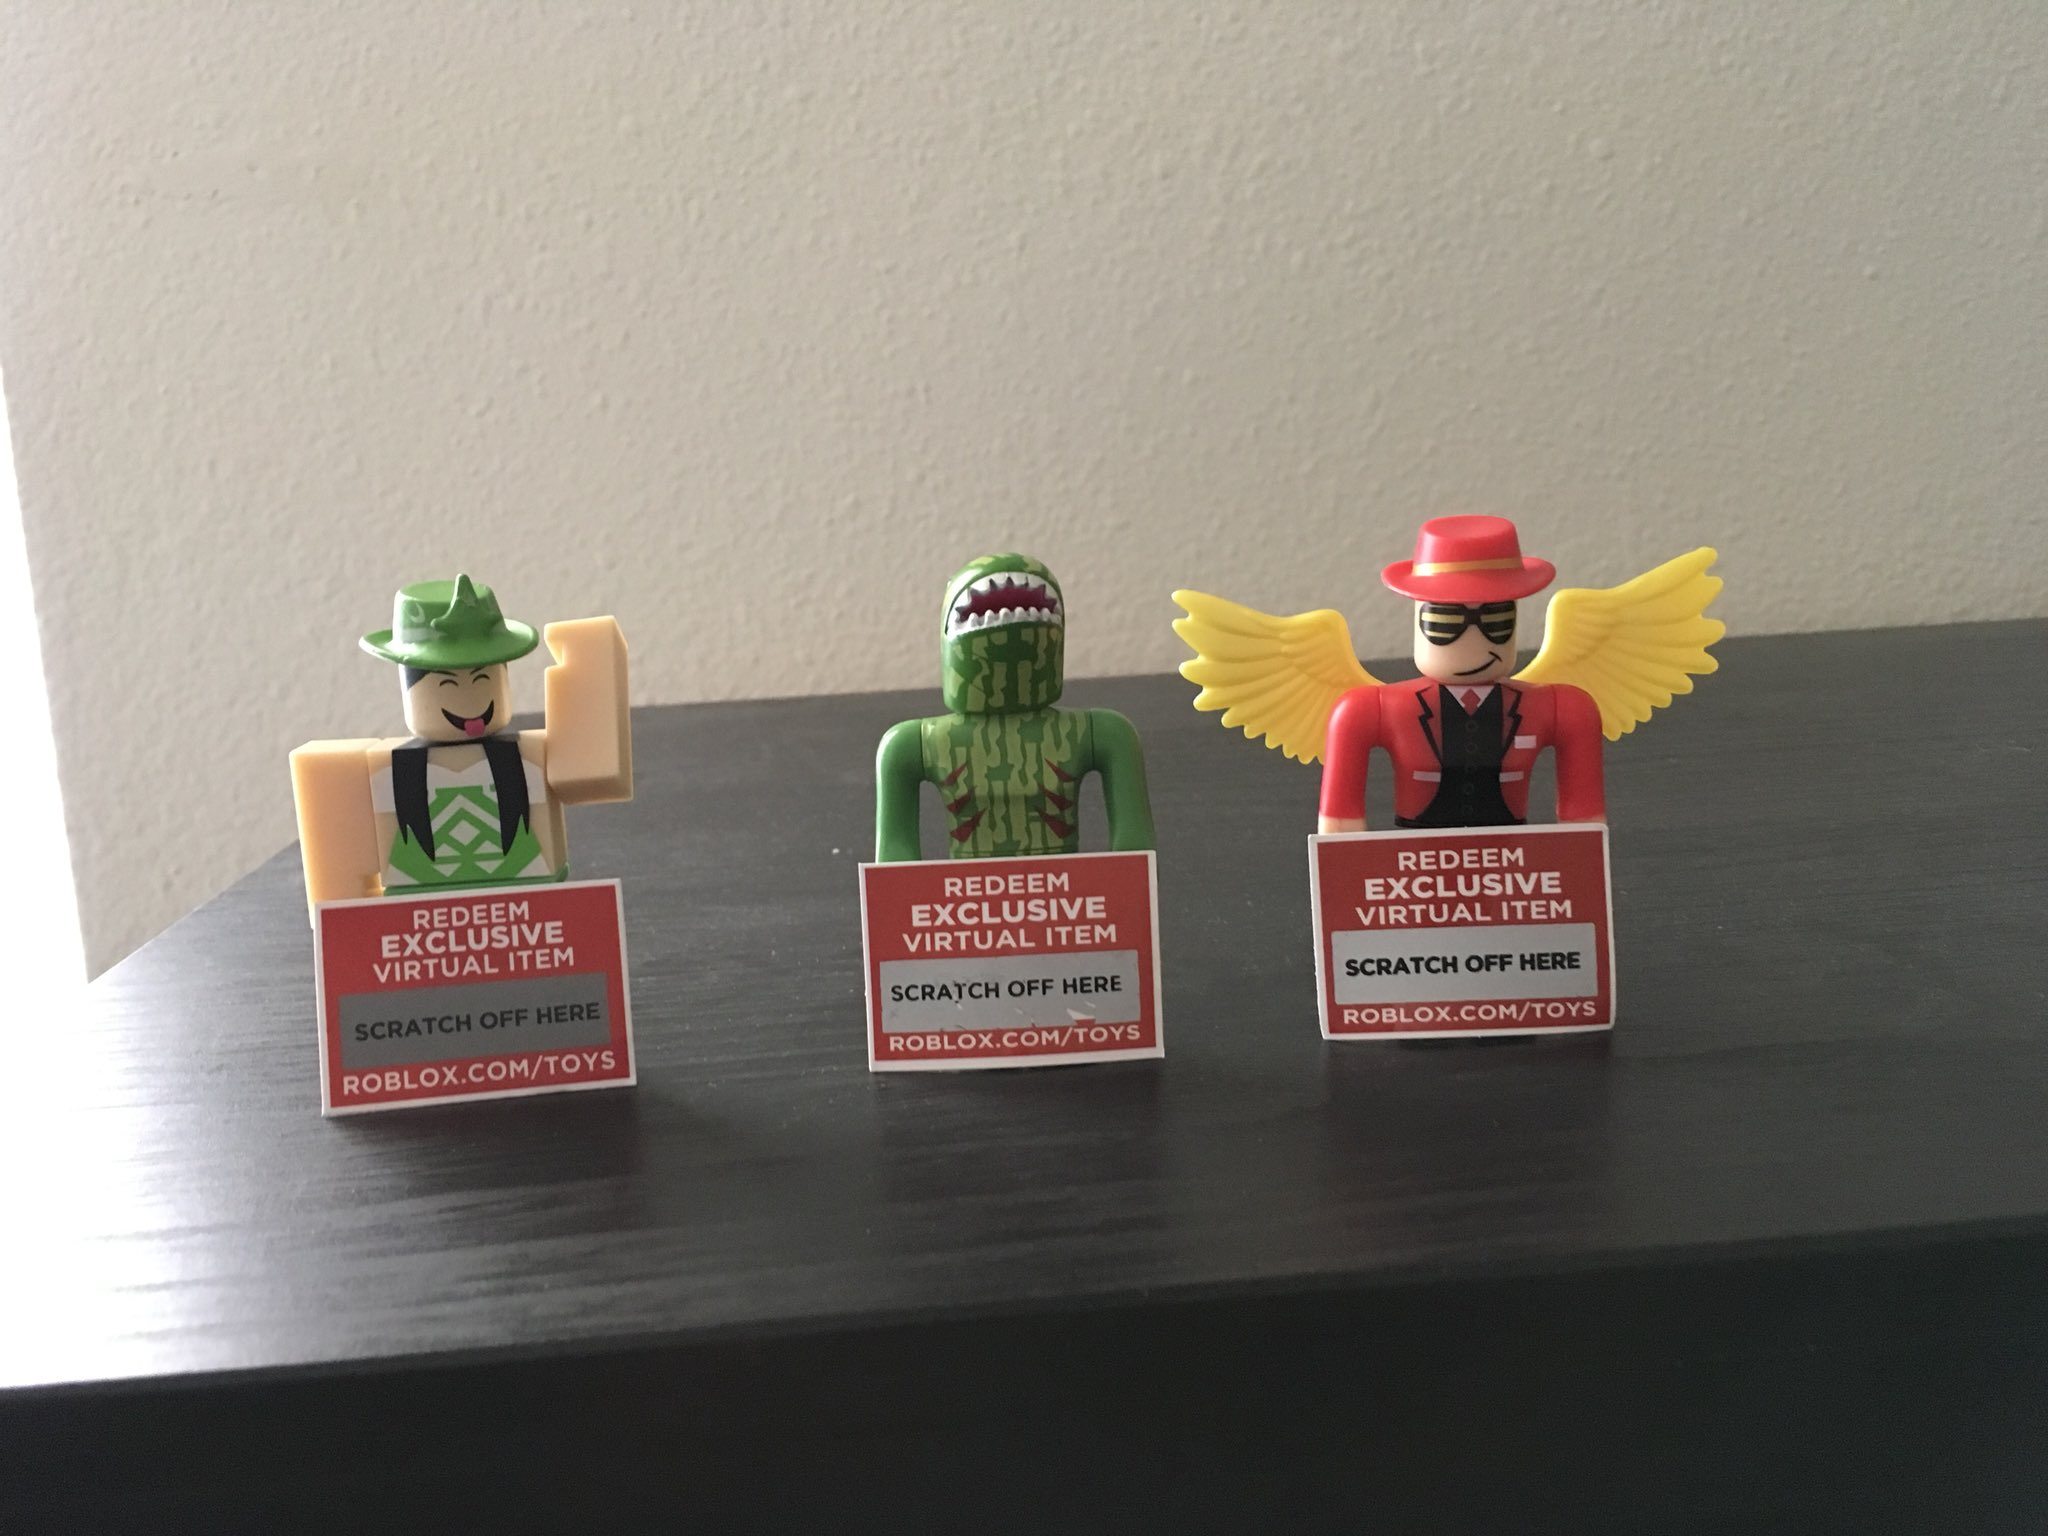 Roblox Watermelon Verification On Twitter Toy Code Giveaway Beeism Watermelon Shark And